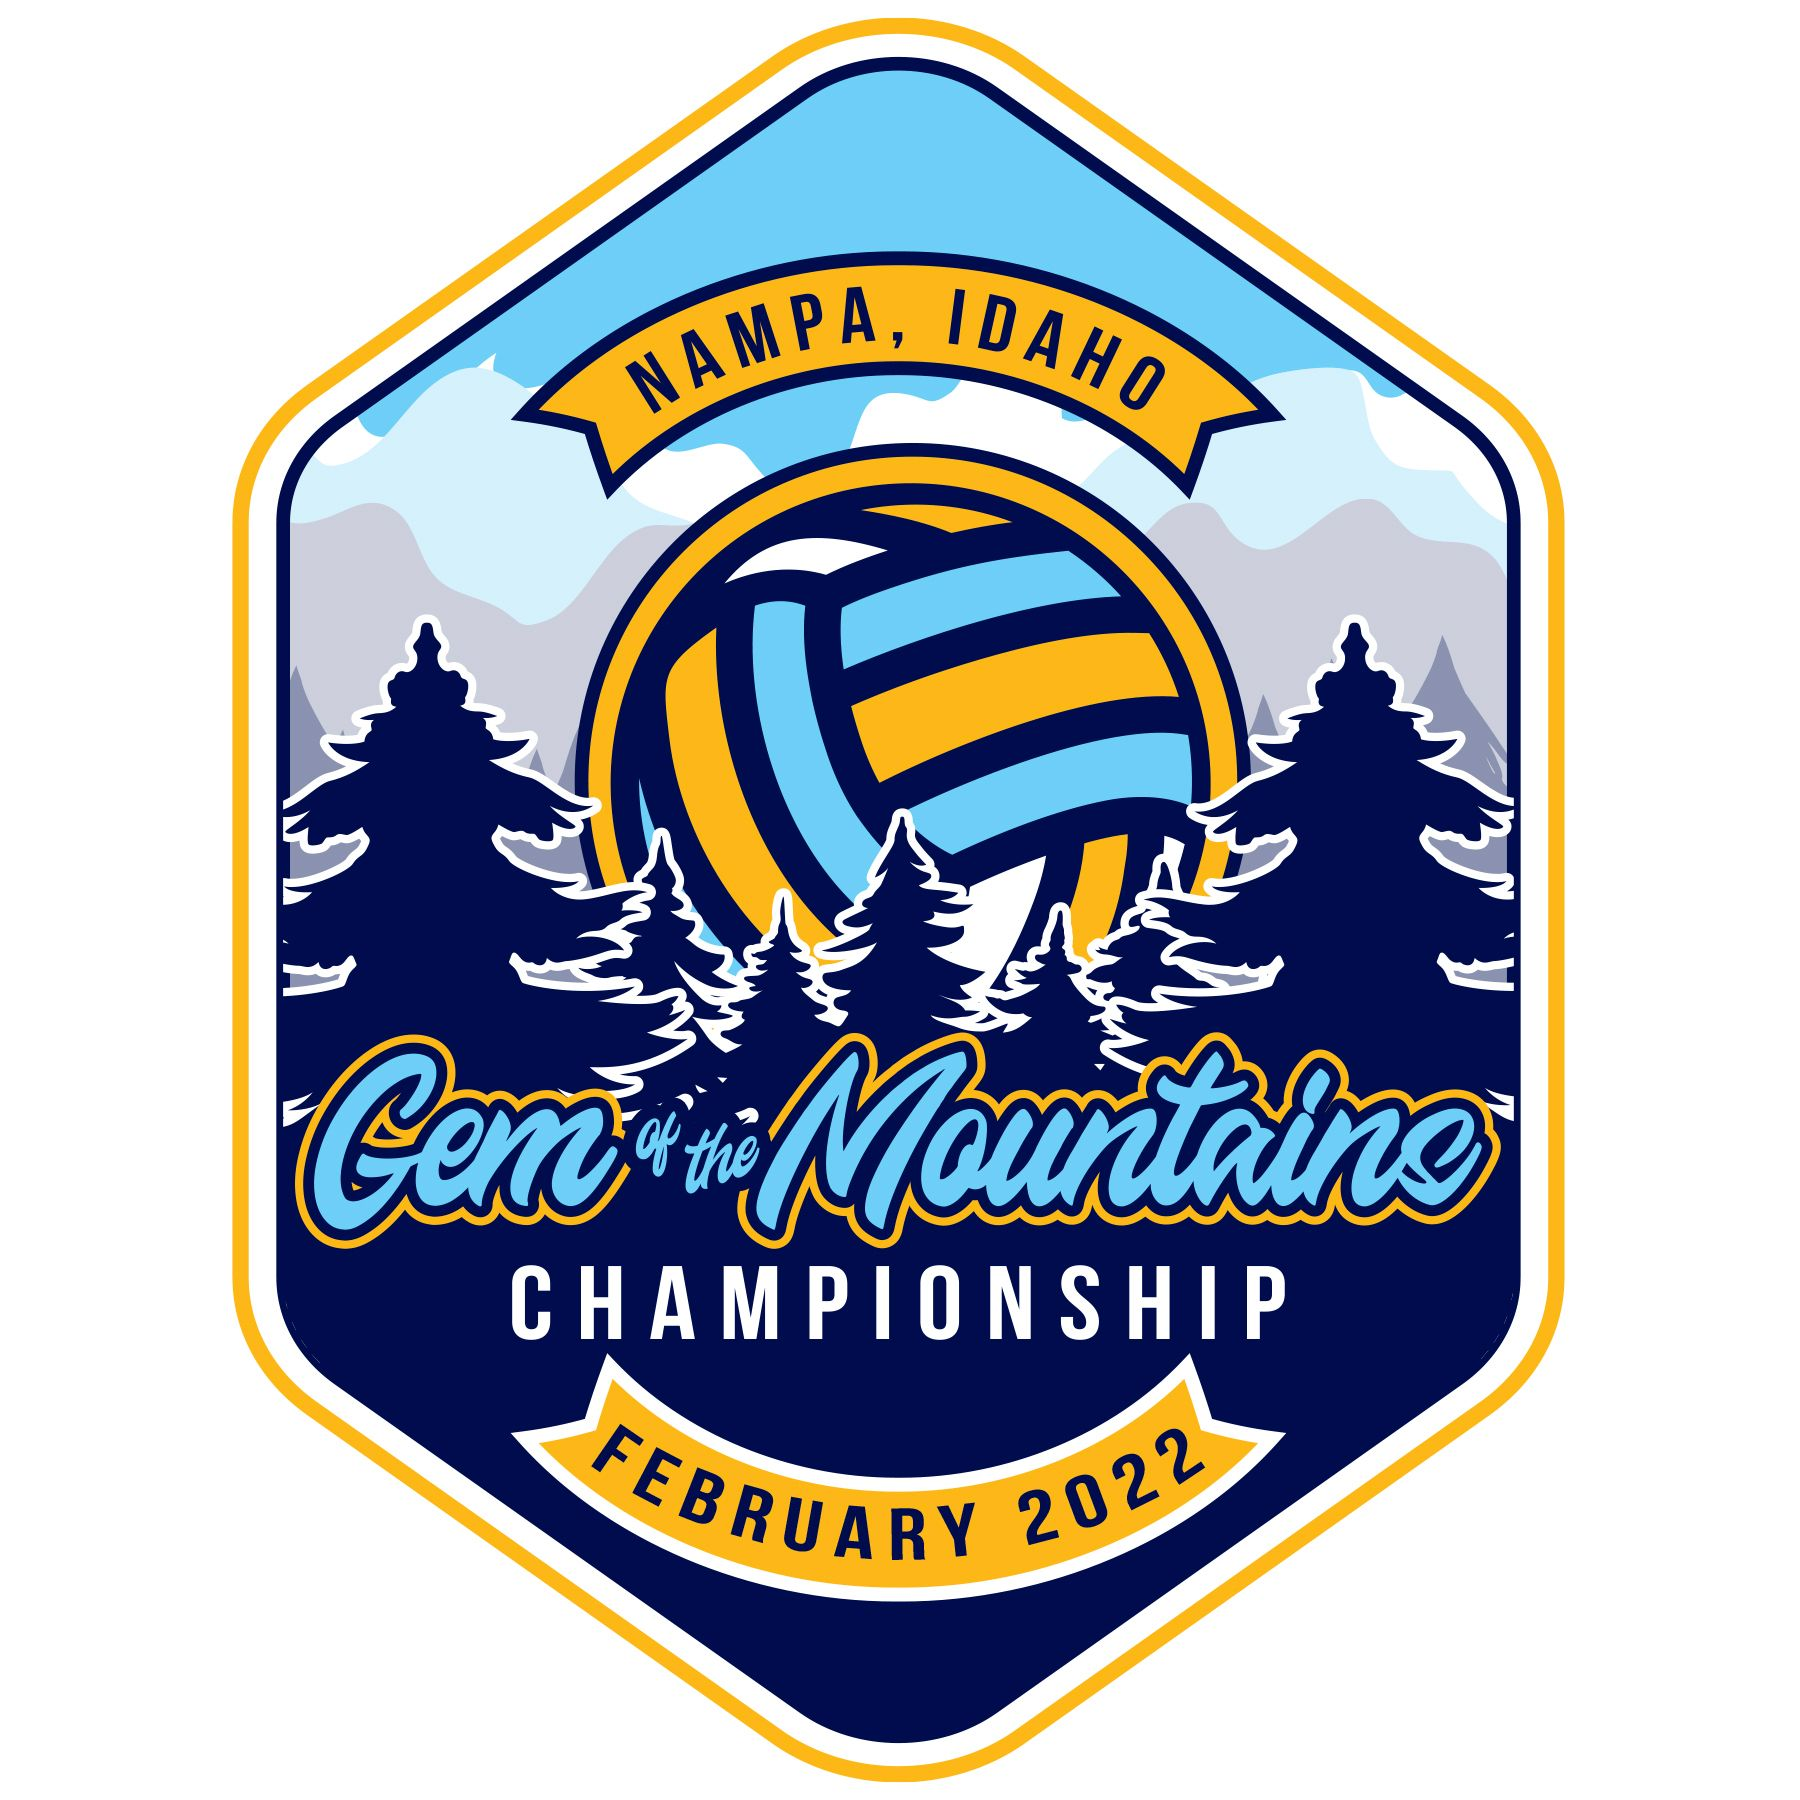 Gem of the Mountains Championship Pt 2